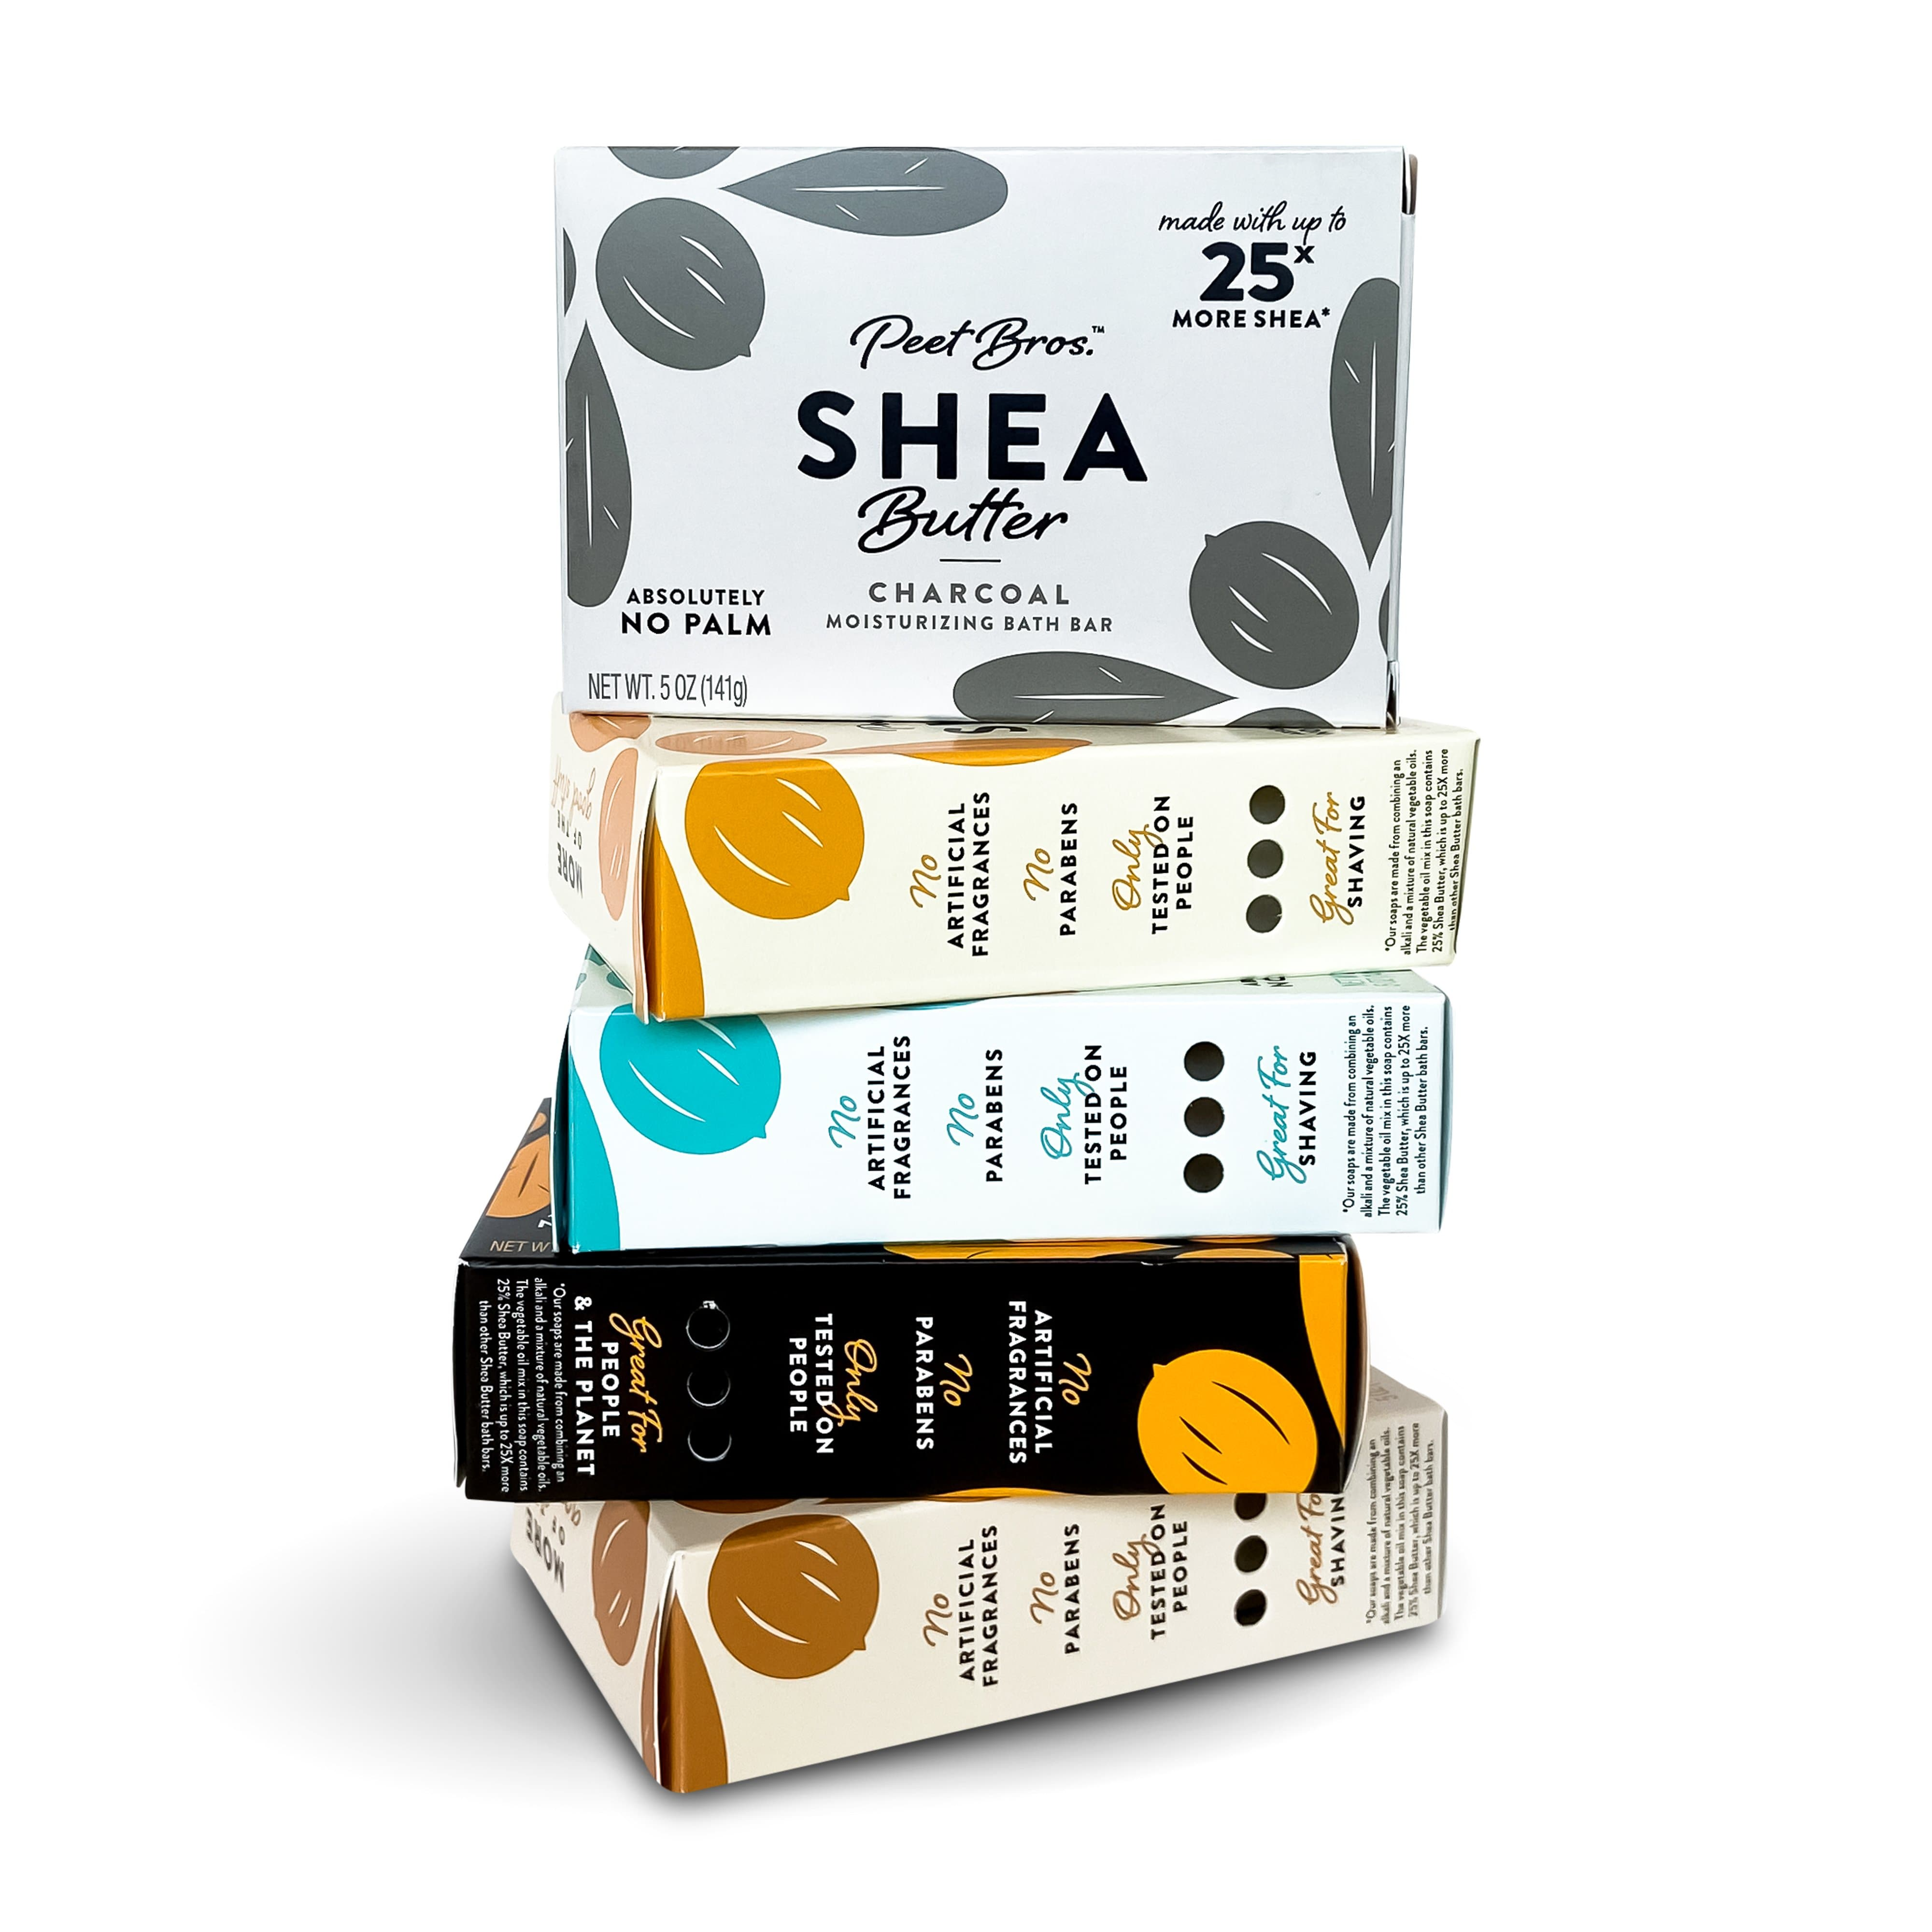 stack of bar soap packages showing the five varieties of shea butter soap